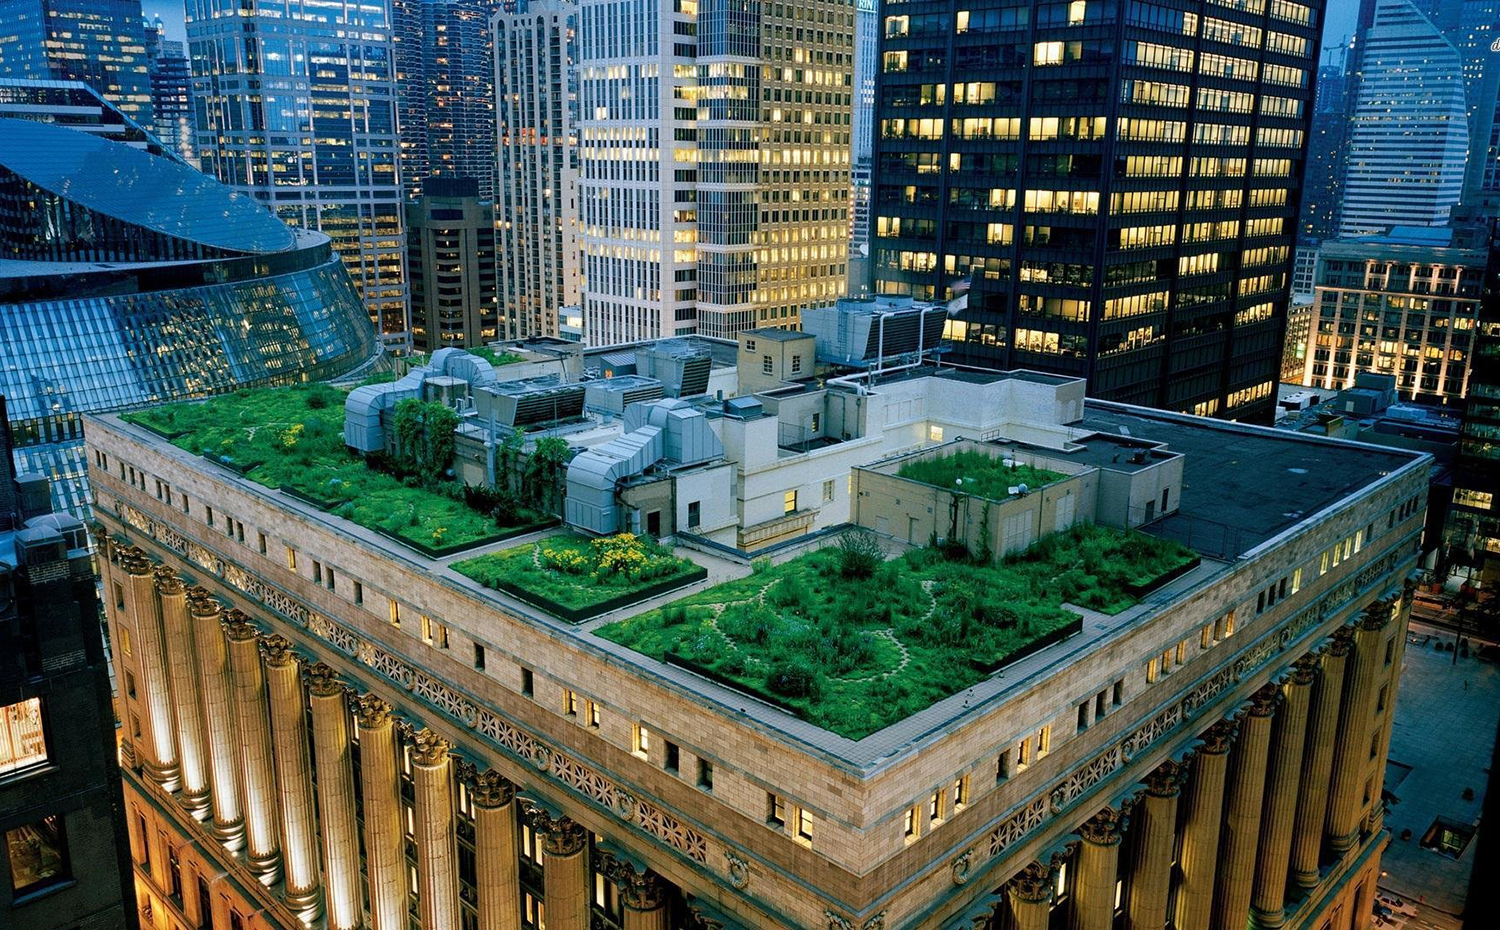 chicago-illinois-usa-green-roof-city-hall. Cubierta vegetal del ayuntamiento de Chicago, de la firma Conservation Design Forum en colaboración con el arquitecto William McDonough